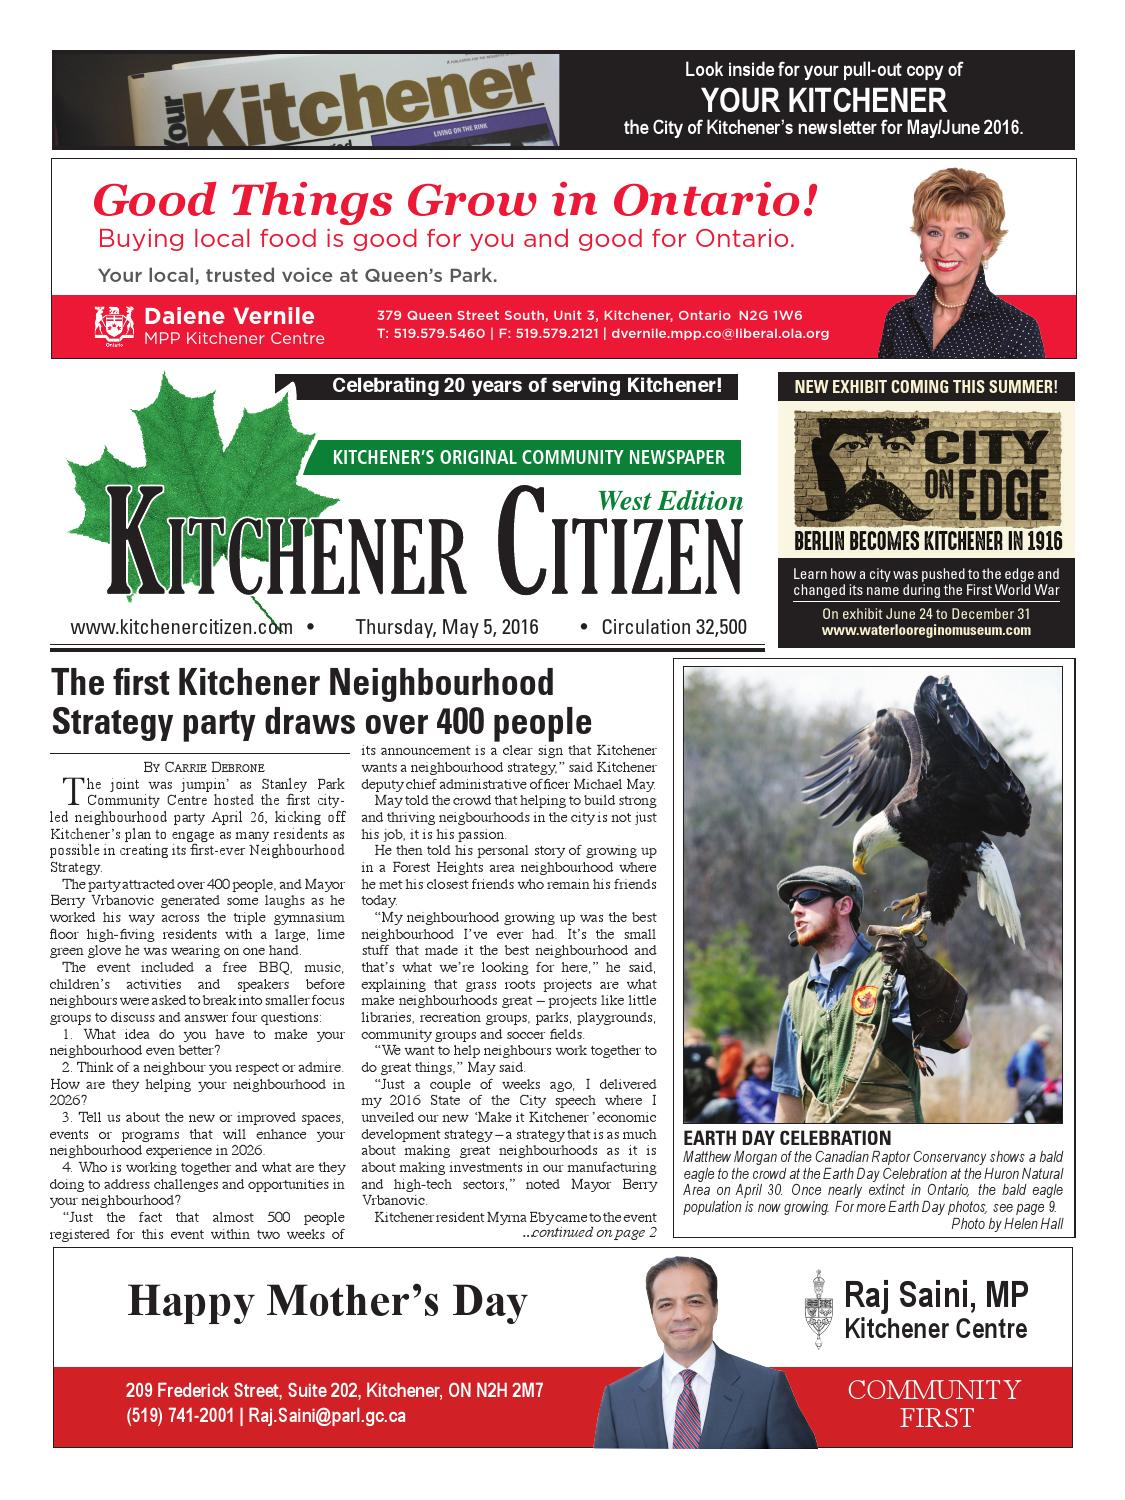 Kitchener Citizen - West Edition - May 2016 by Kitchener Citizen - issuu